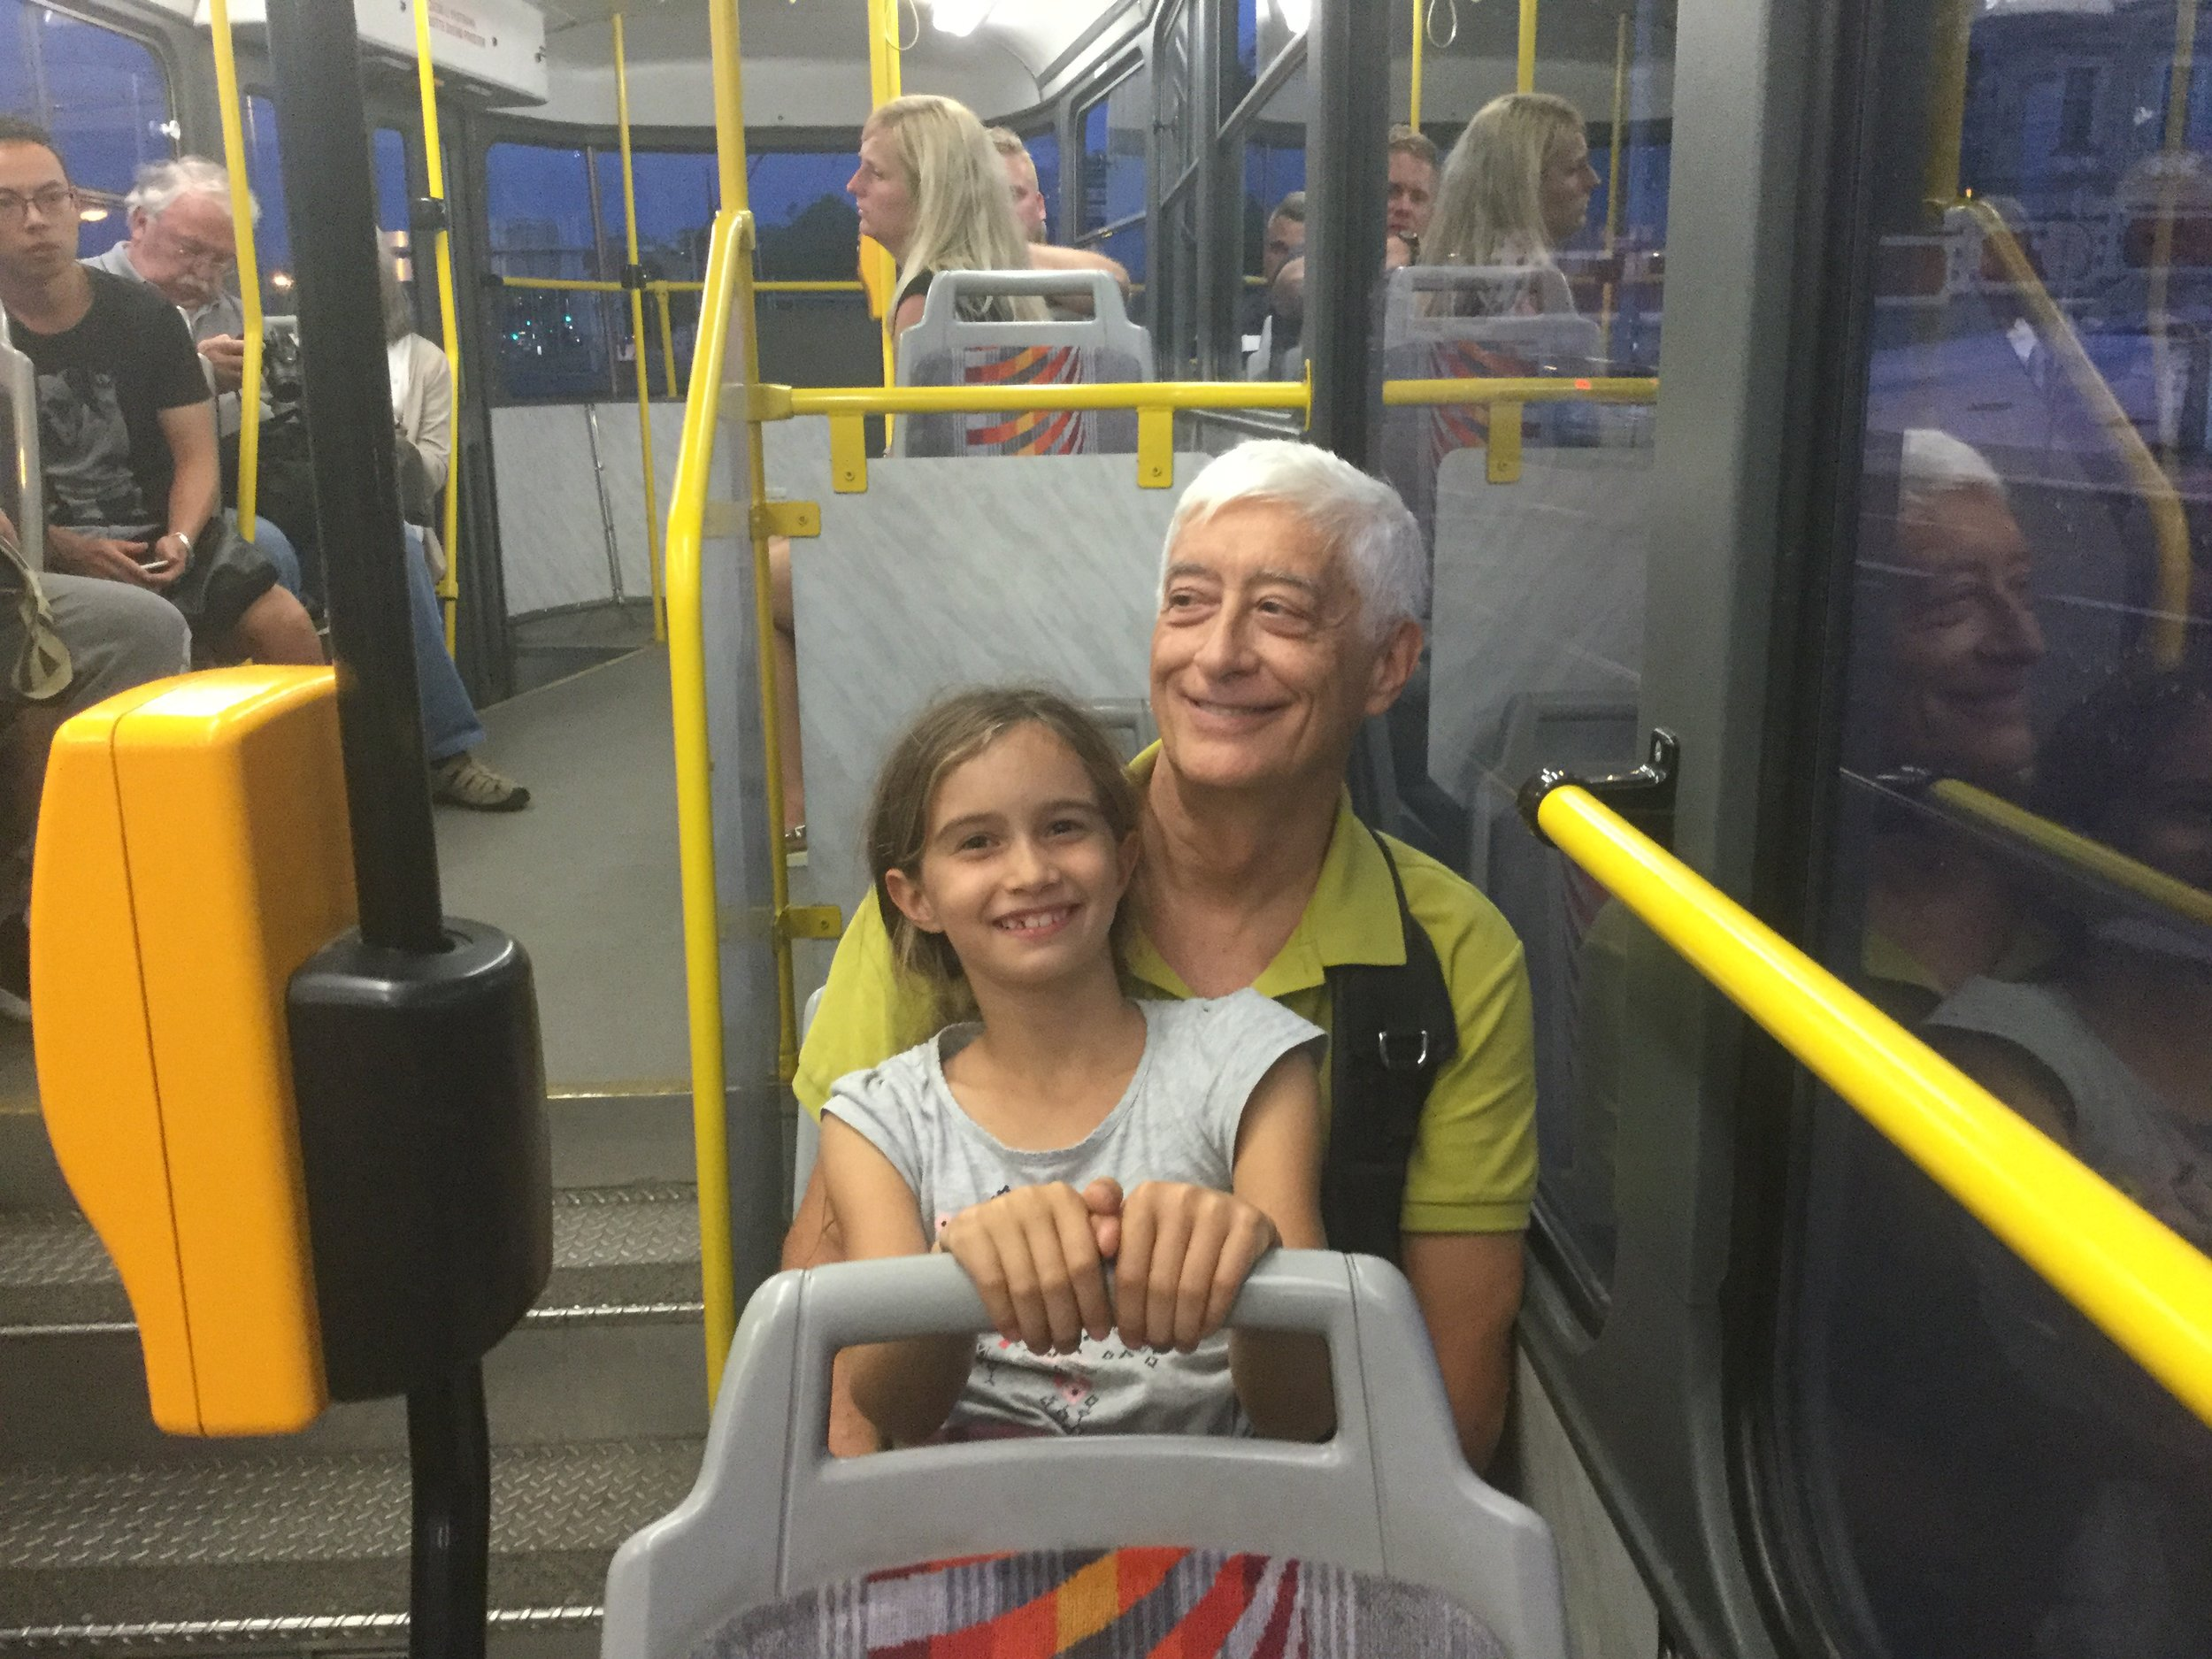 Goofing around on the tram.